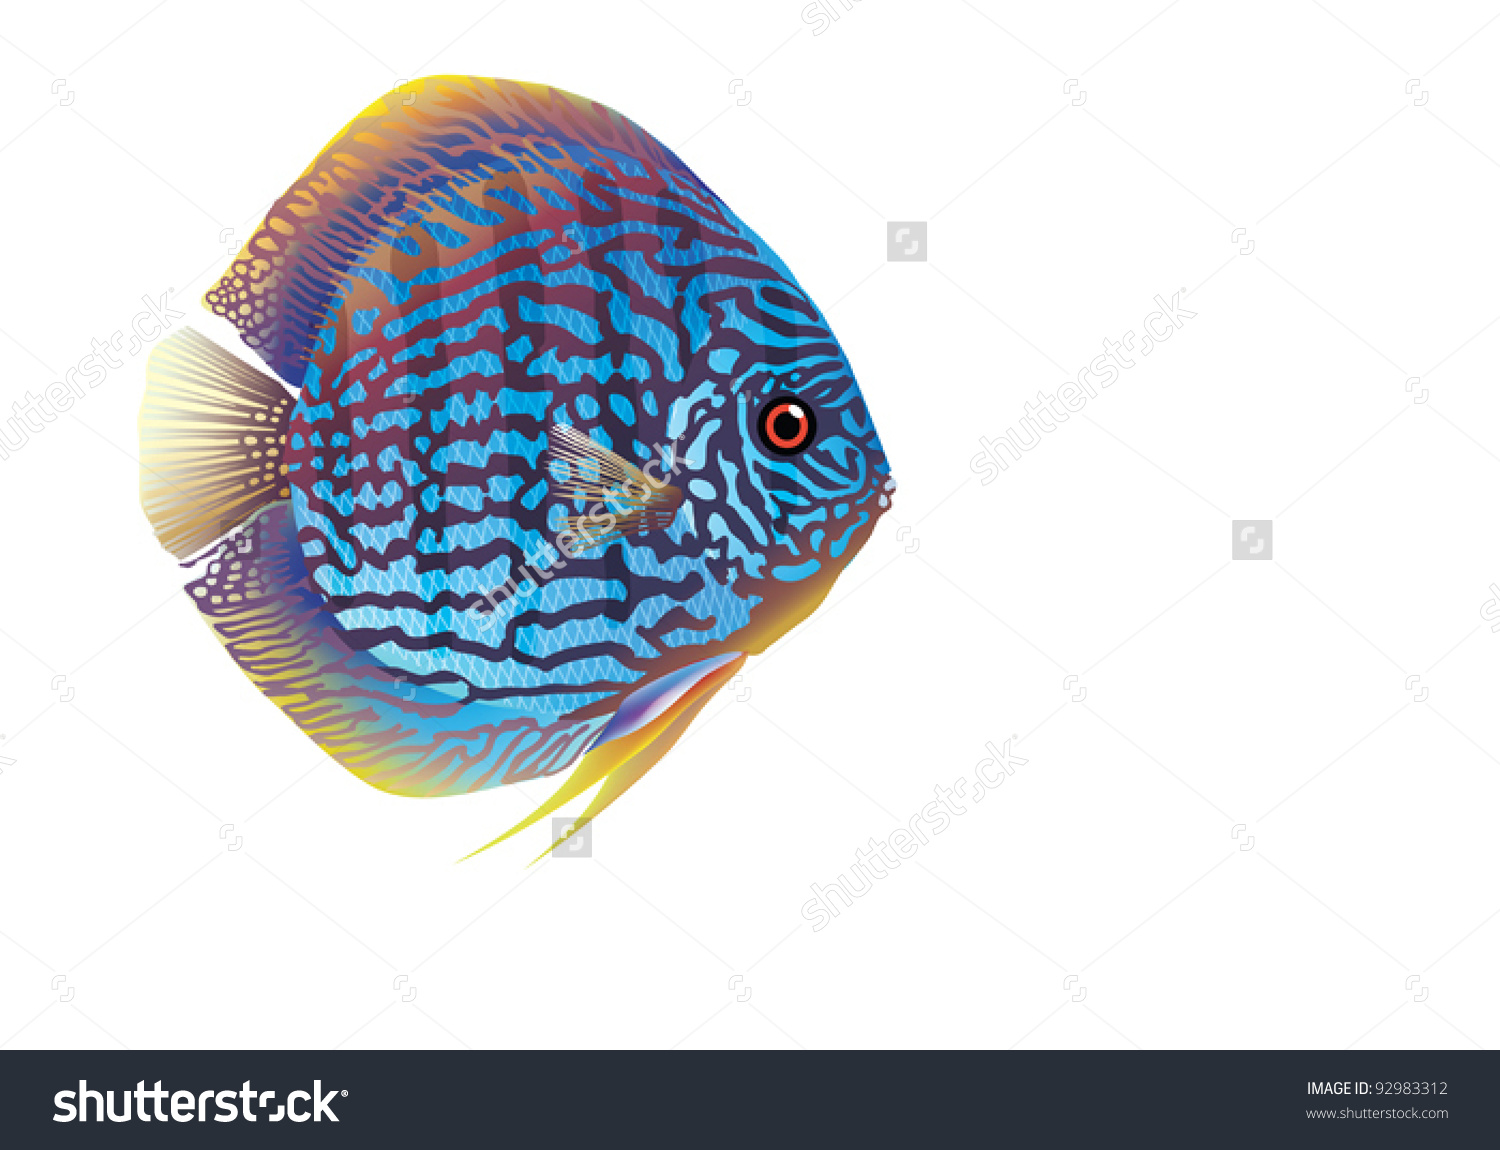 Discus Fish clipart #1, Download drawings